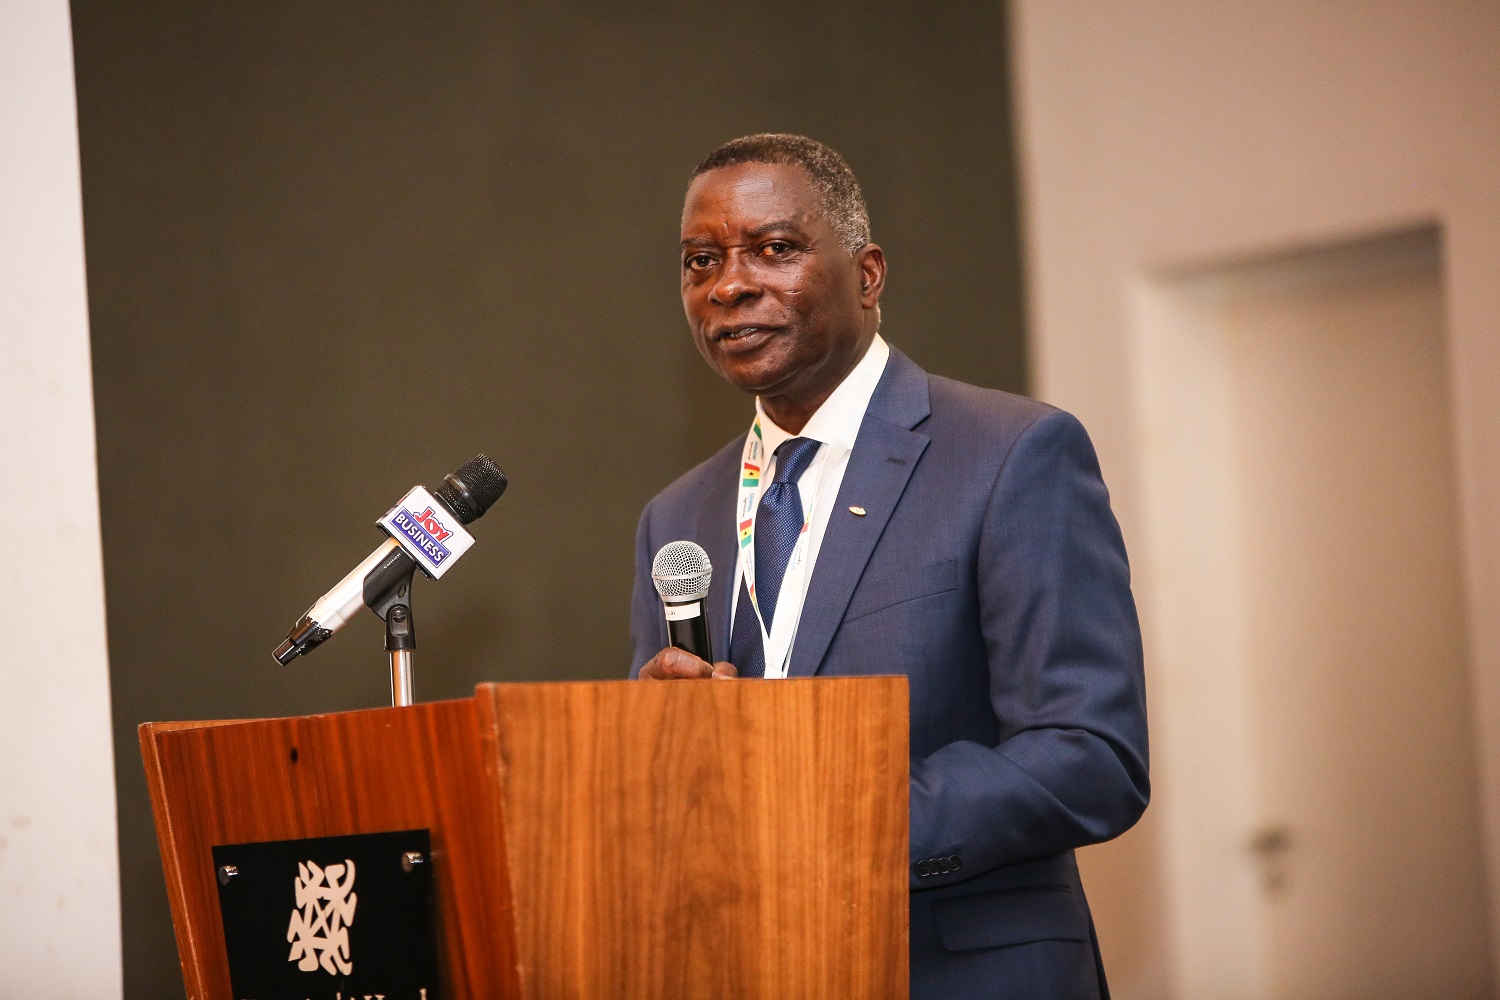 Mr. Edmund Acheampong, Country Manager of Siemens Ghana